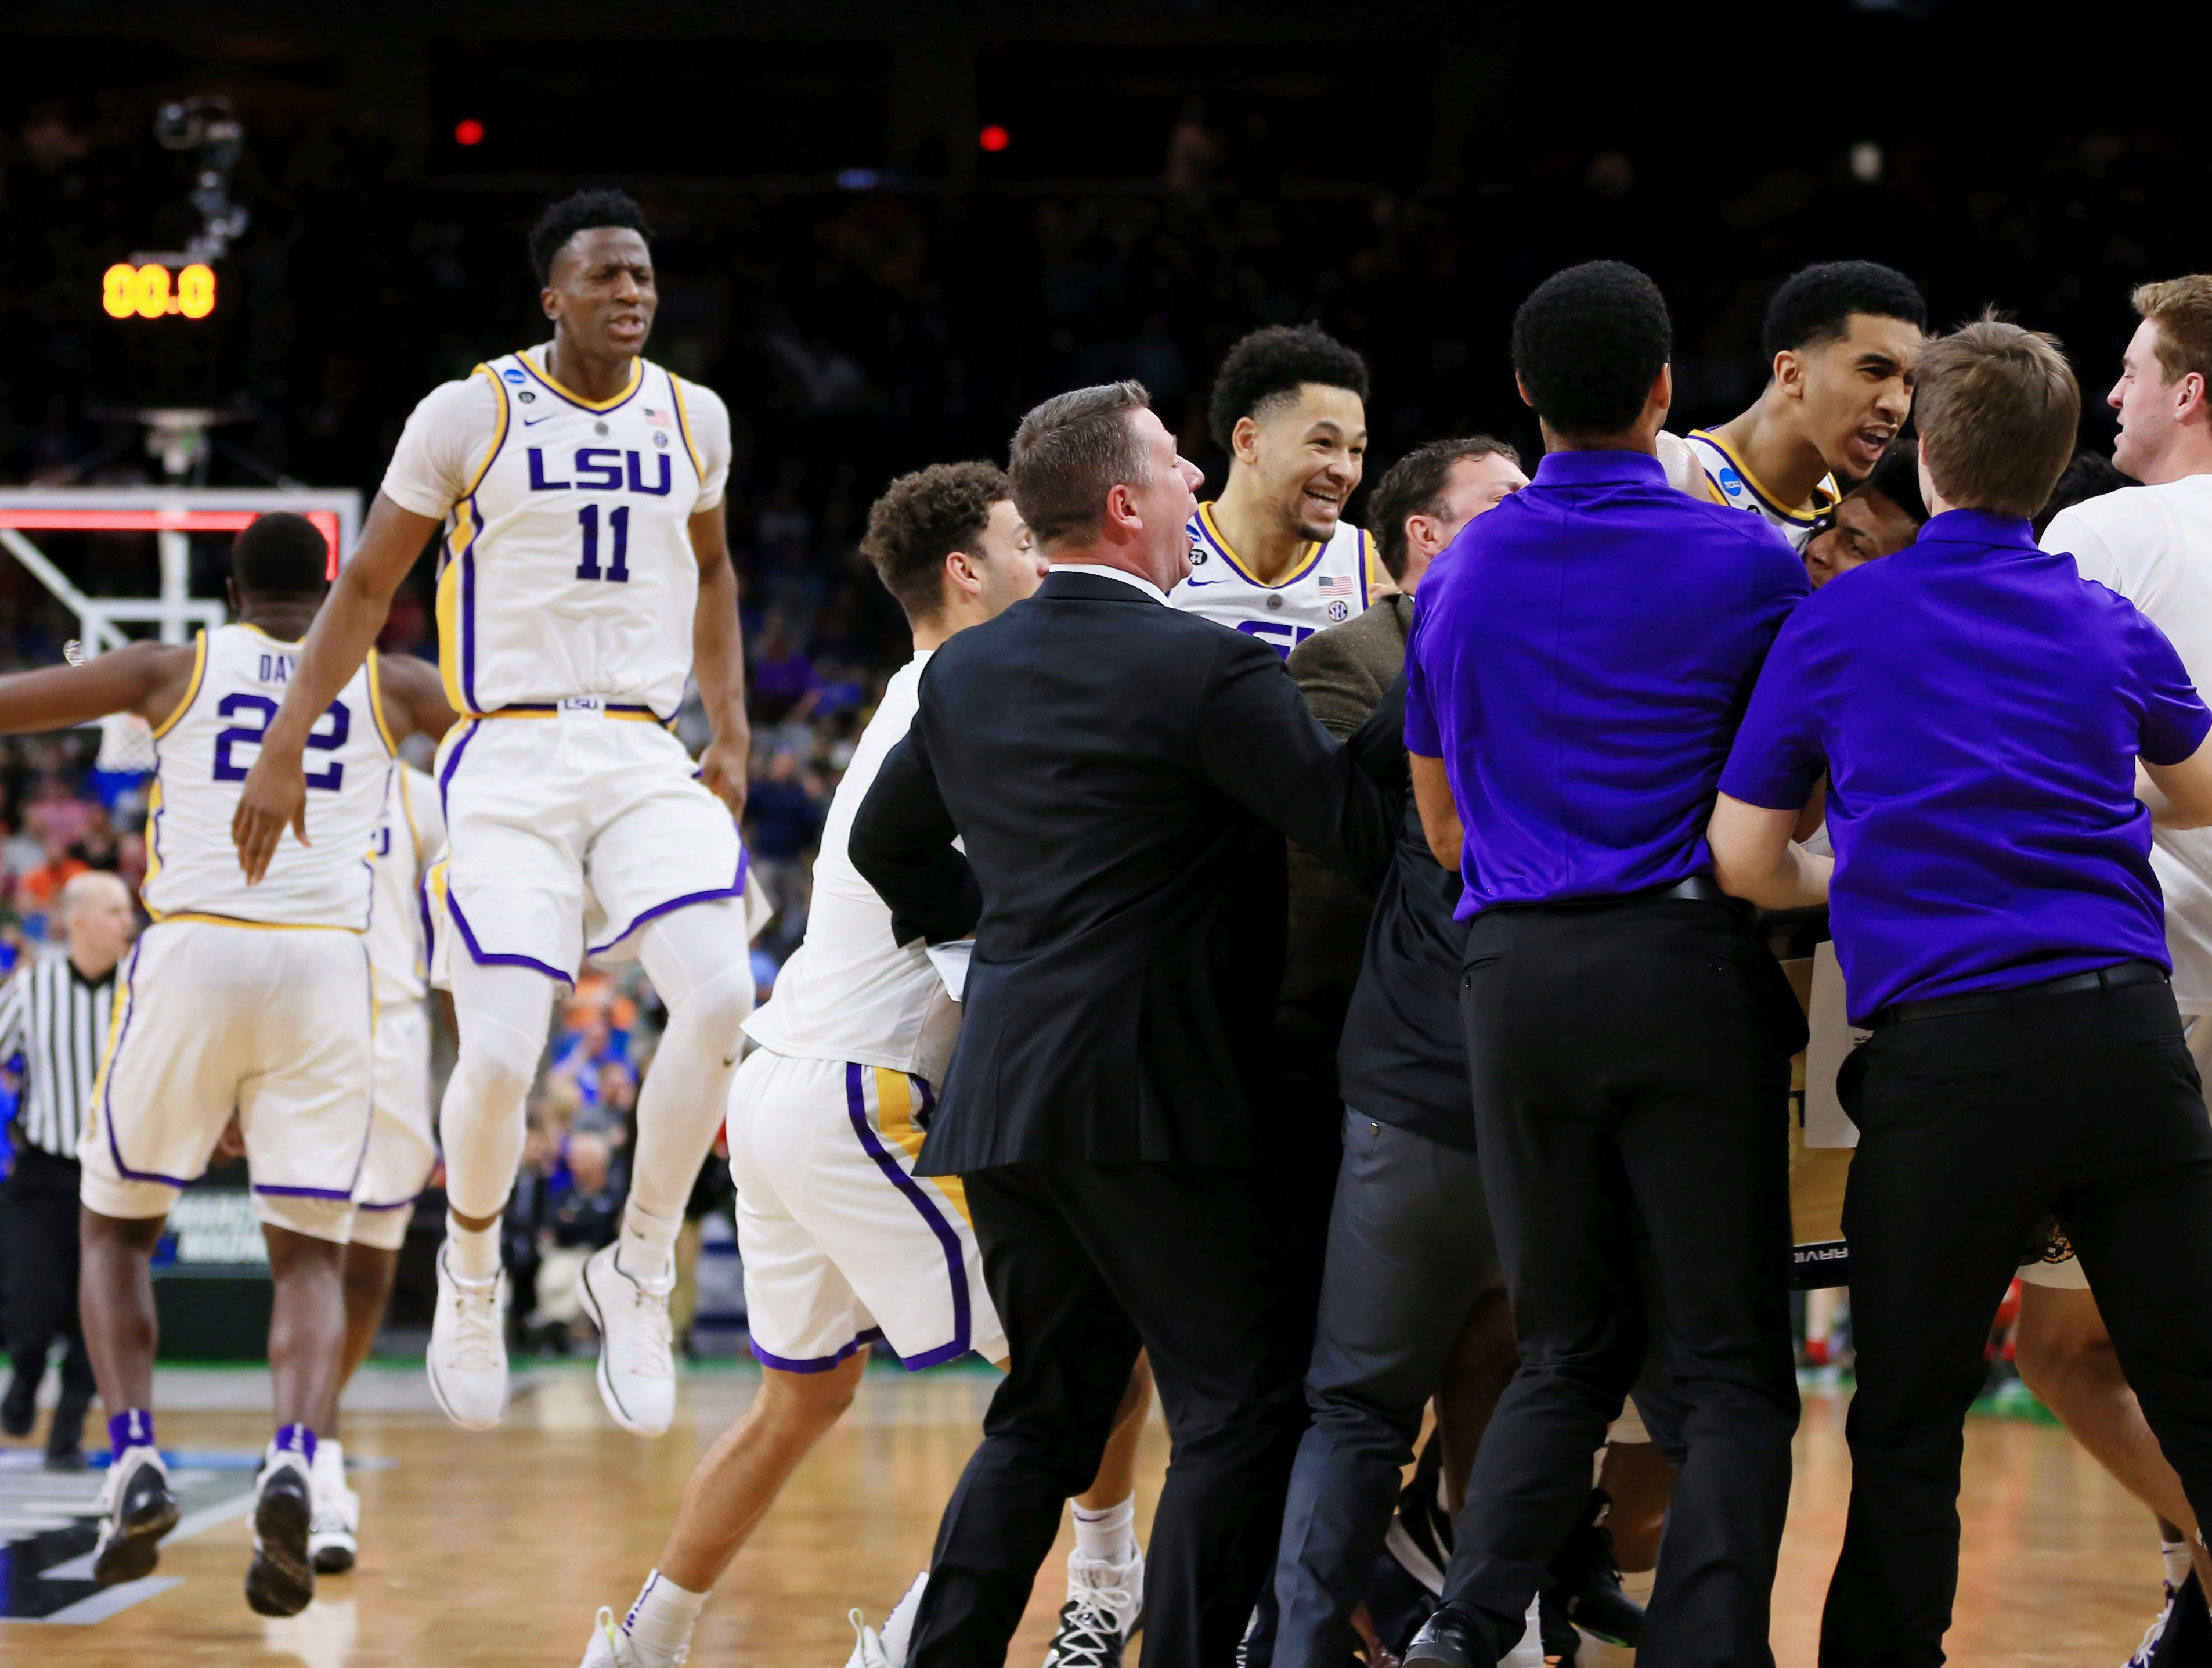 Mar 23, 2019; Jacksonville, FL, USA; The LSU Tigers celebrate their win over Maryland Terrapins in the second round of the 2019 NCAA Tournament at Jacksonville Veterans Memorial Arena. The LSU Tigers won 69-67. Mandatory Credit: Matt Stamey-USA TODAY Sports